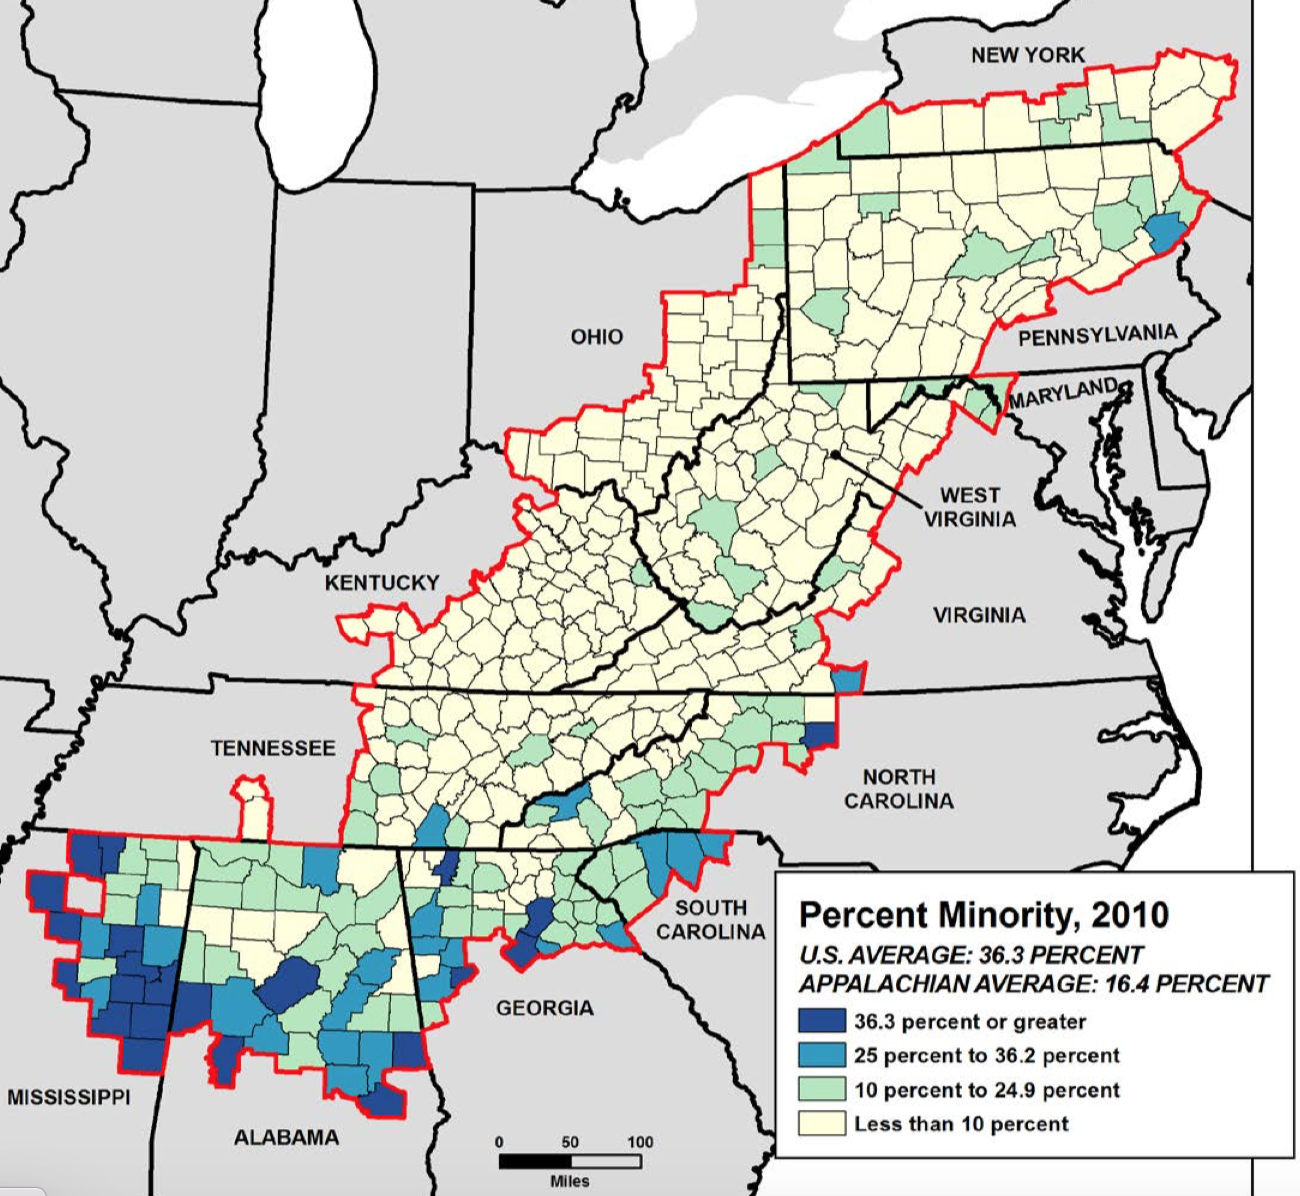 Minority presence Appalachian Avg 2010